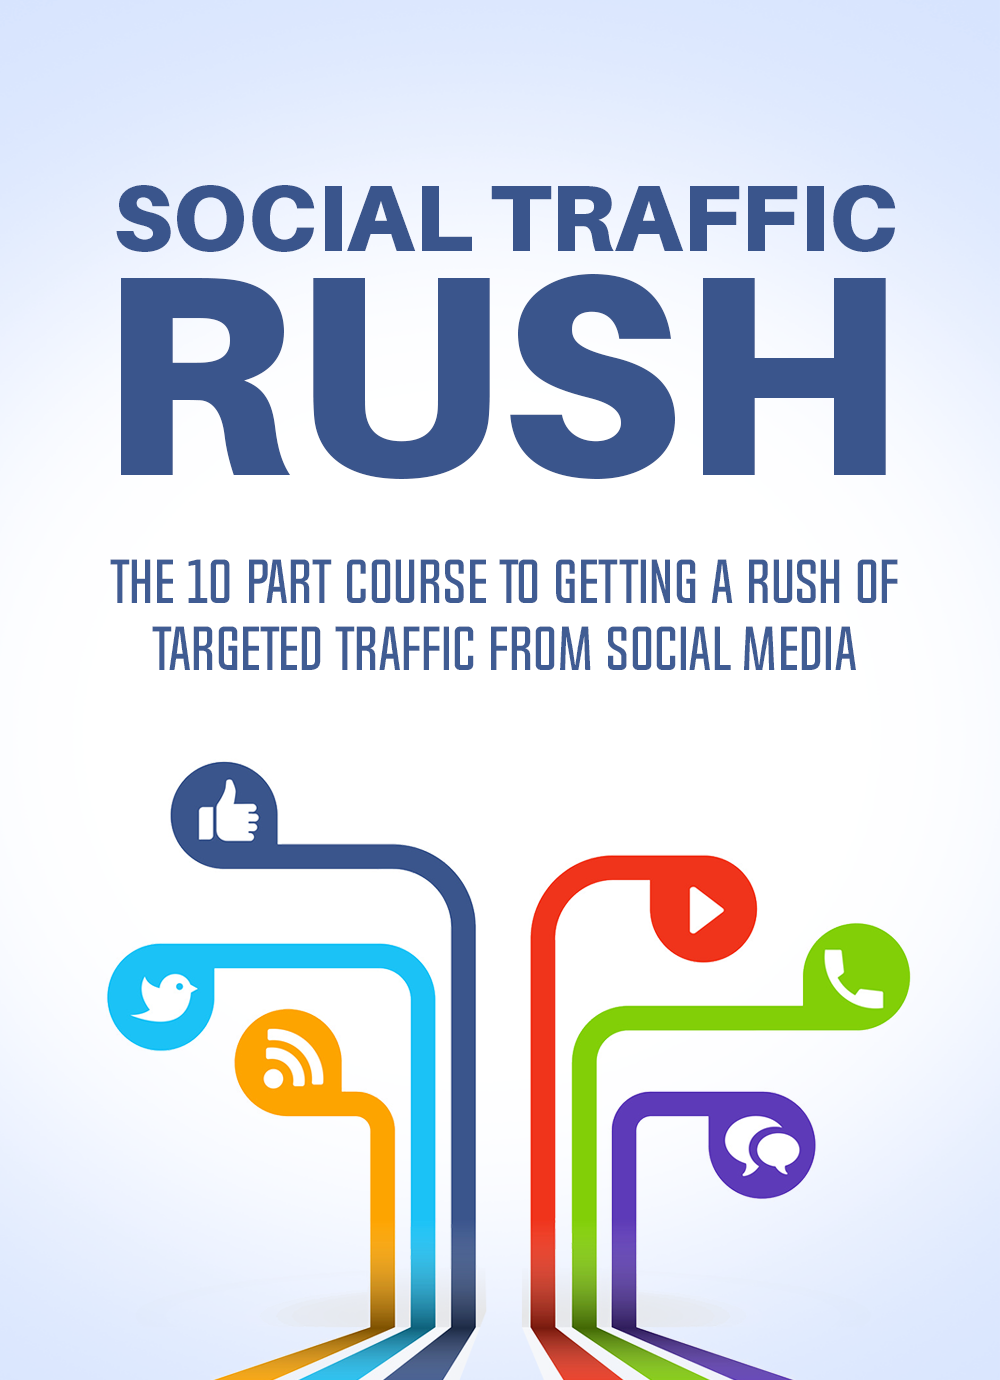 Social Traffic Rush (The 10 Part Course To Getting A Rush Of Targeted Traffic From Social Media) Ebook's Book Image